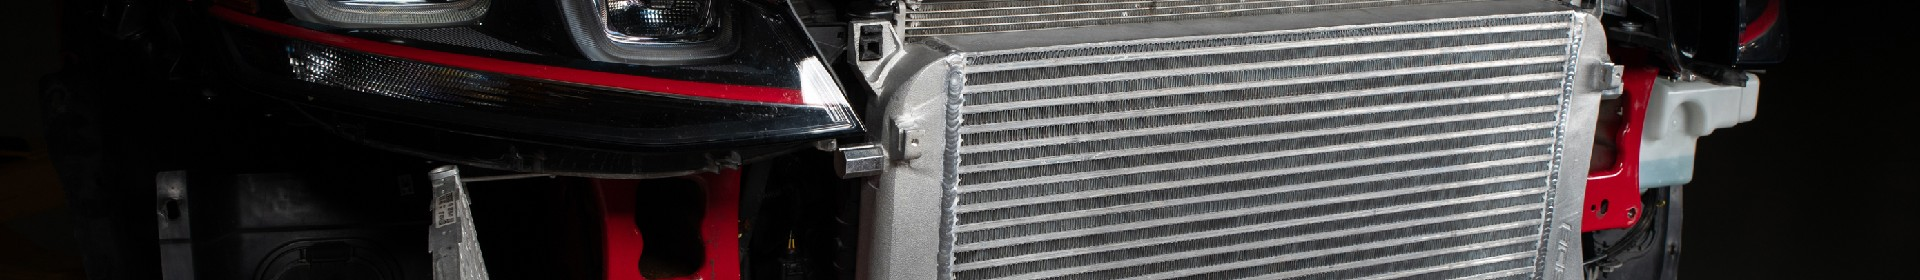 cooling-system-category-banner.jpg